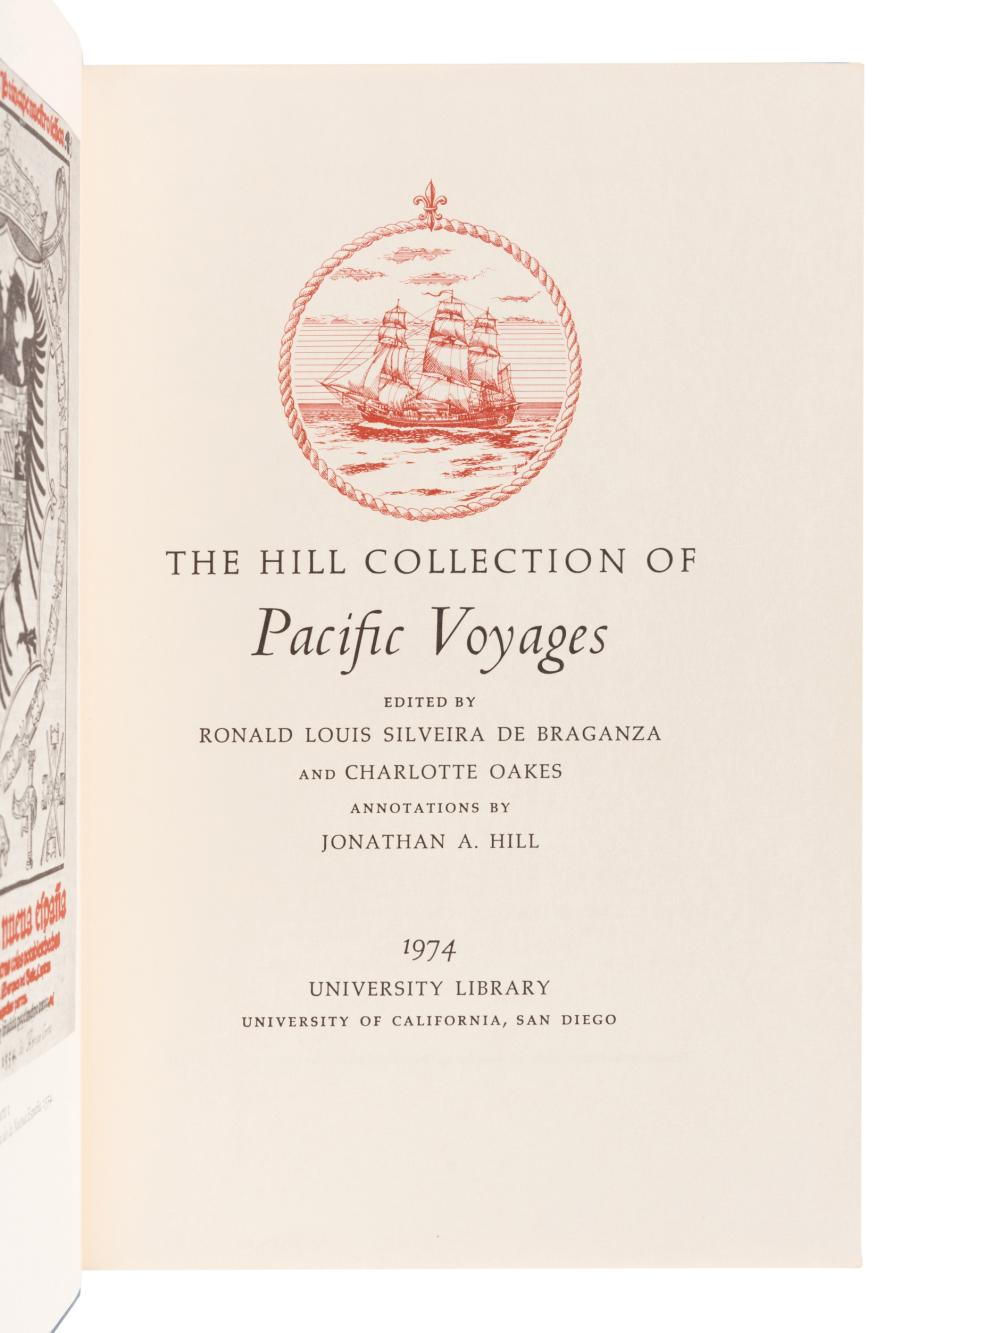 [TRAVEL & EXPLORATION]. -- Hill Collection of Pacific Voyages. San Diego: University of California, 1974, 1982, 1983.